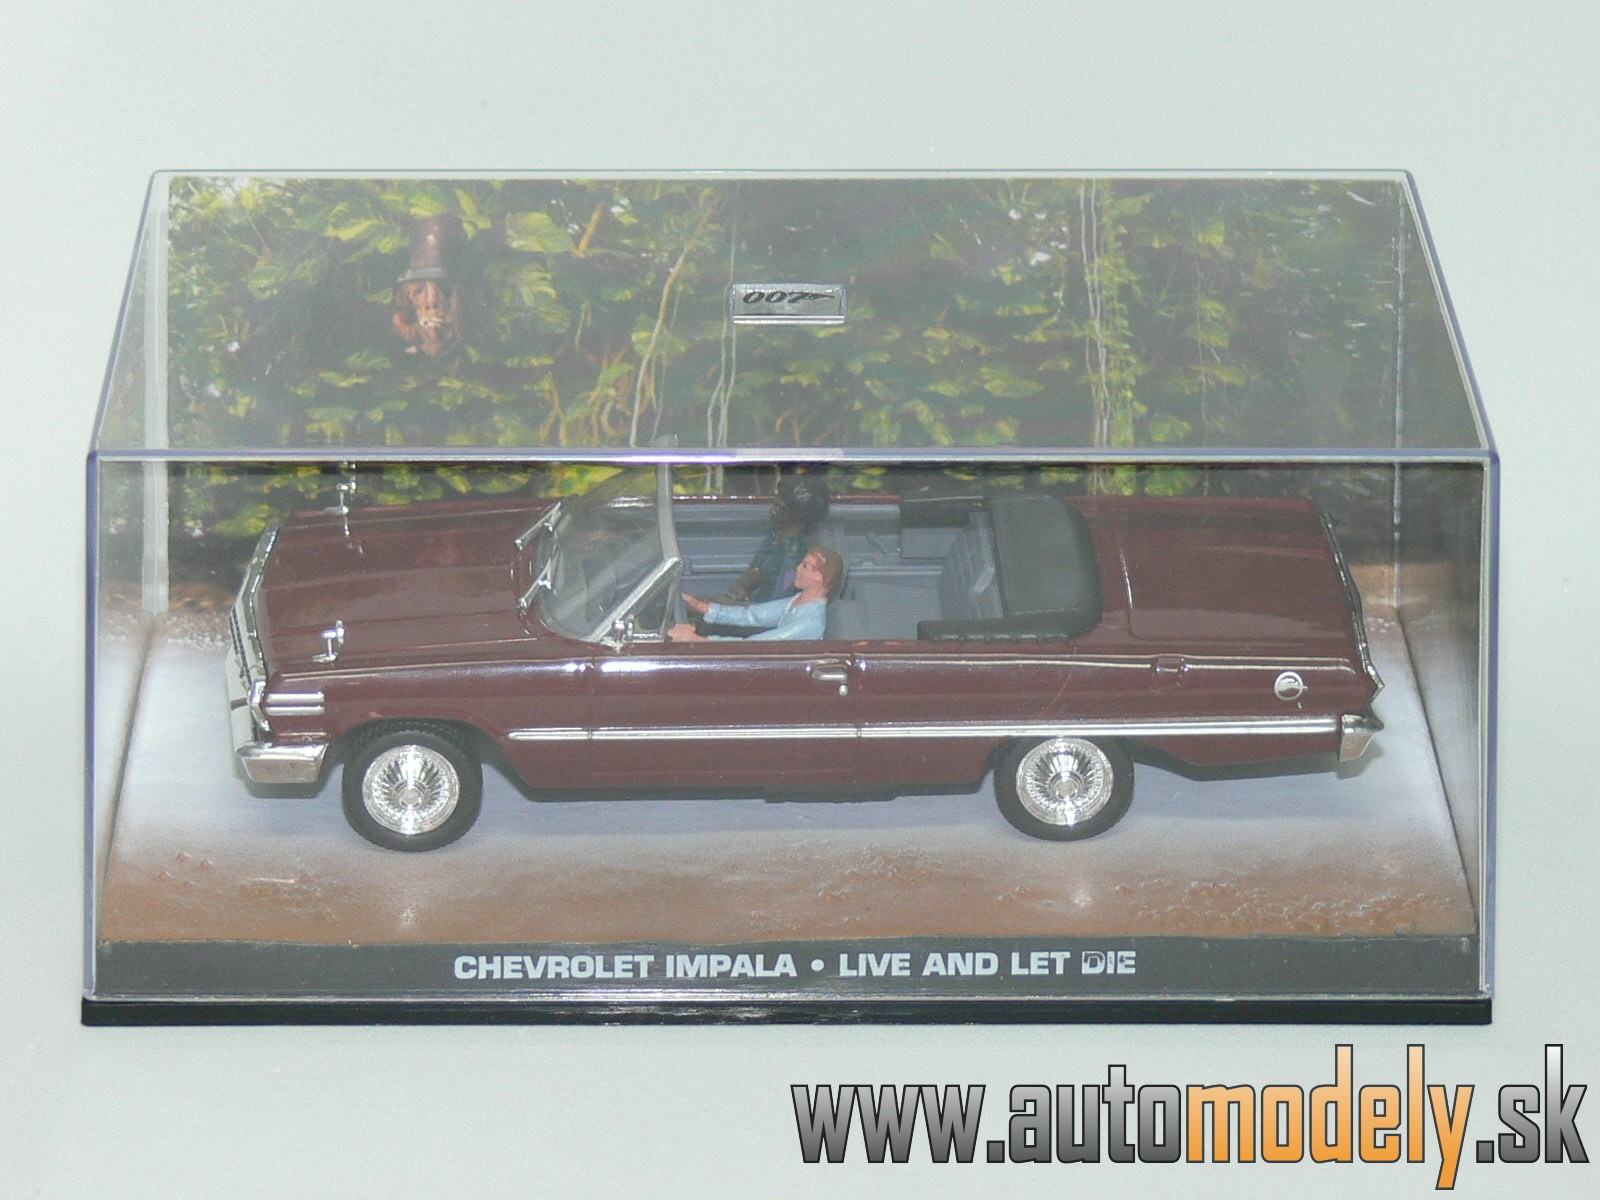 Chevrolet Impala - Live And Let Die - James Bond 007 - 1:43